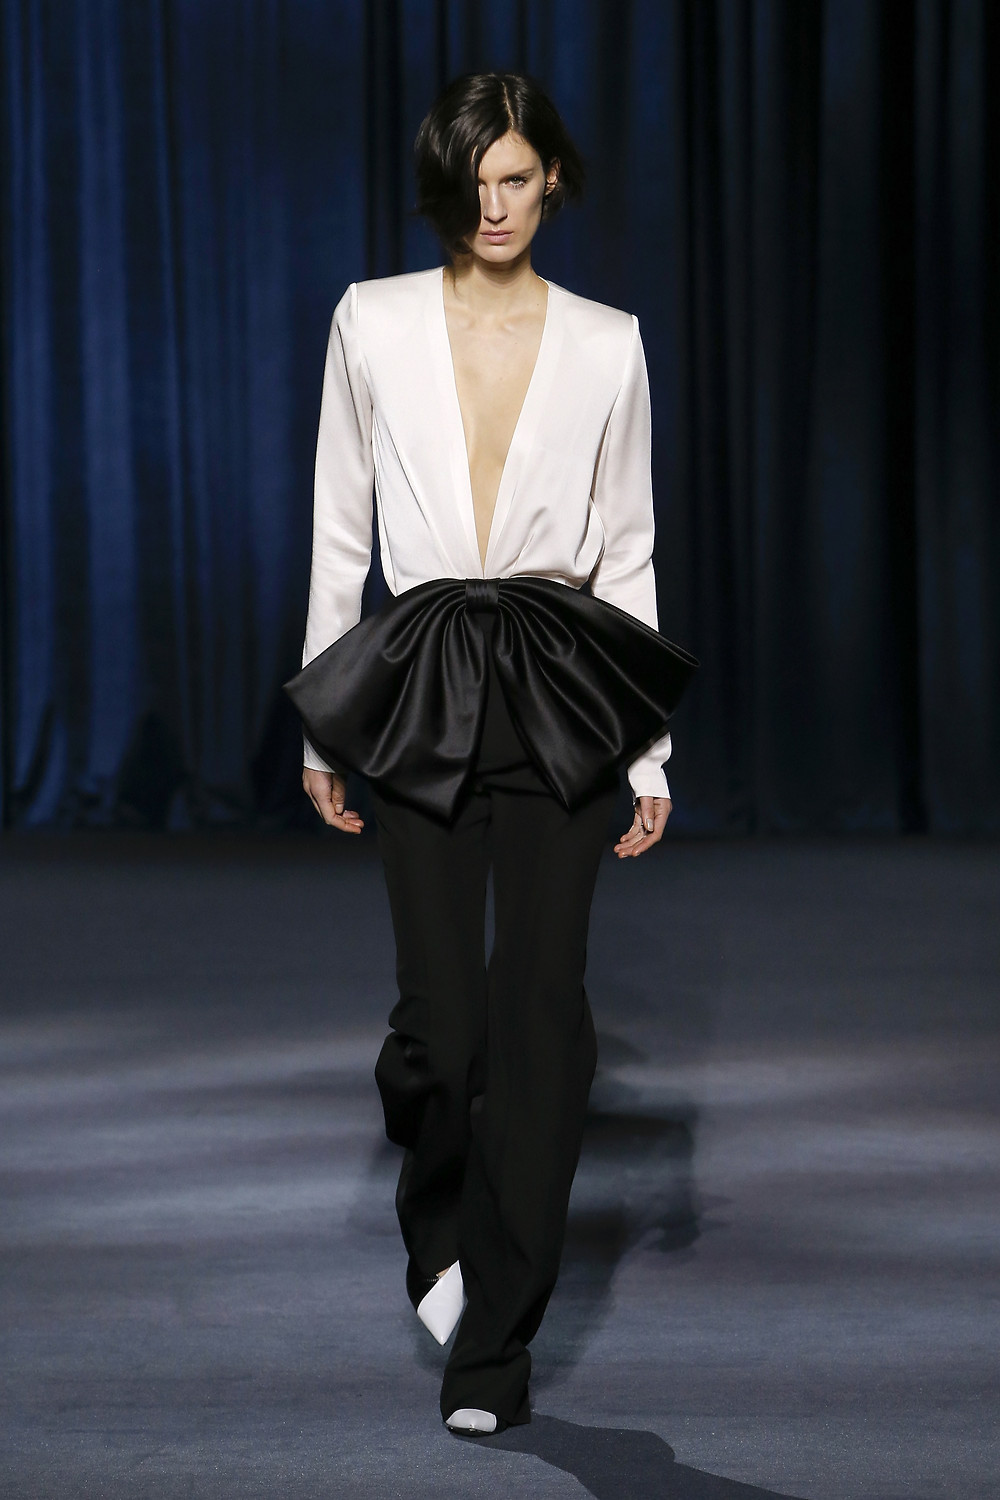 Givenchy aw18 personal stylist london image consultant